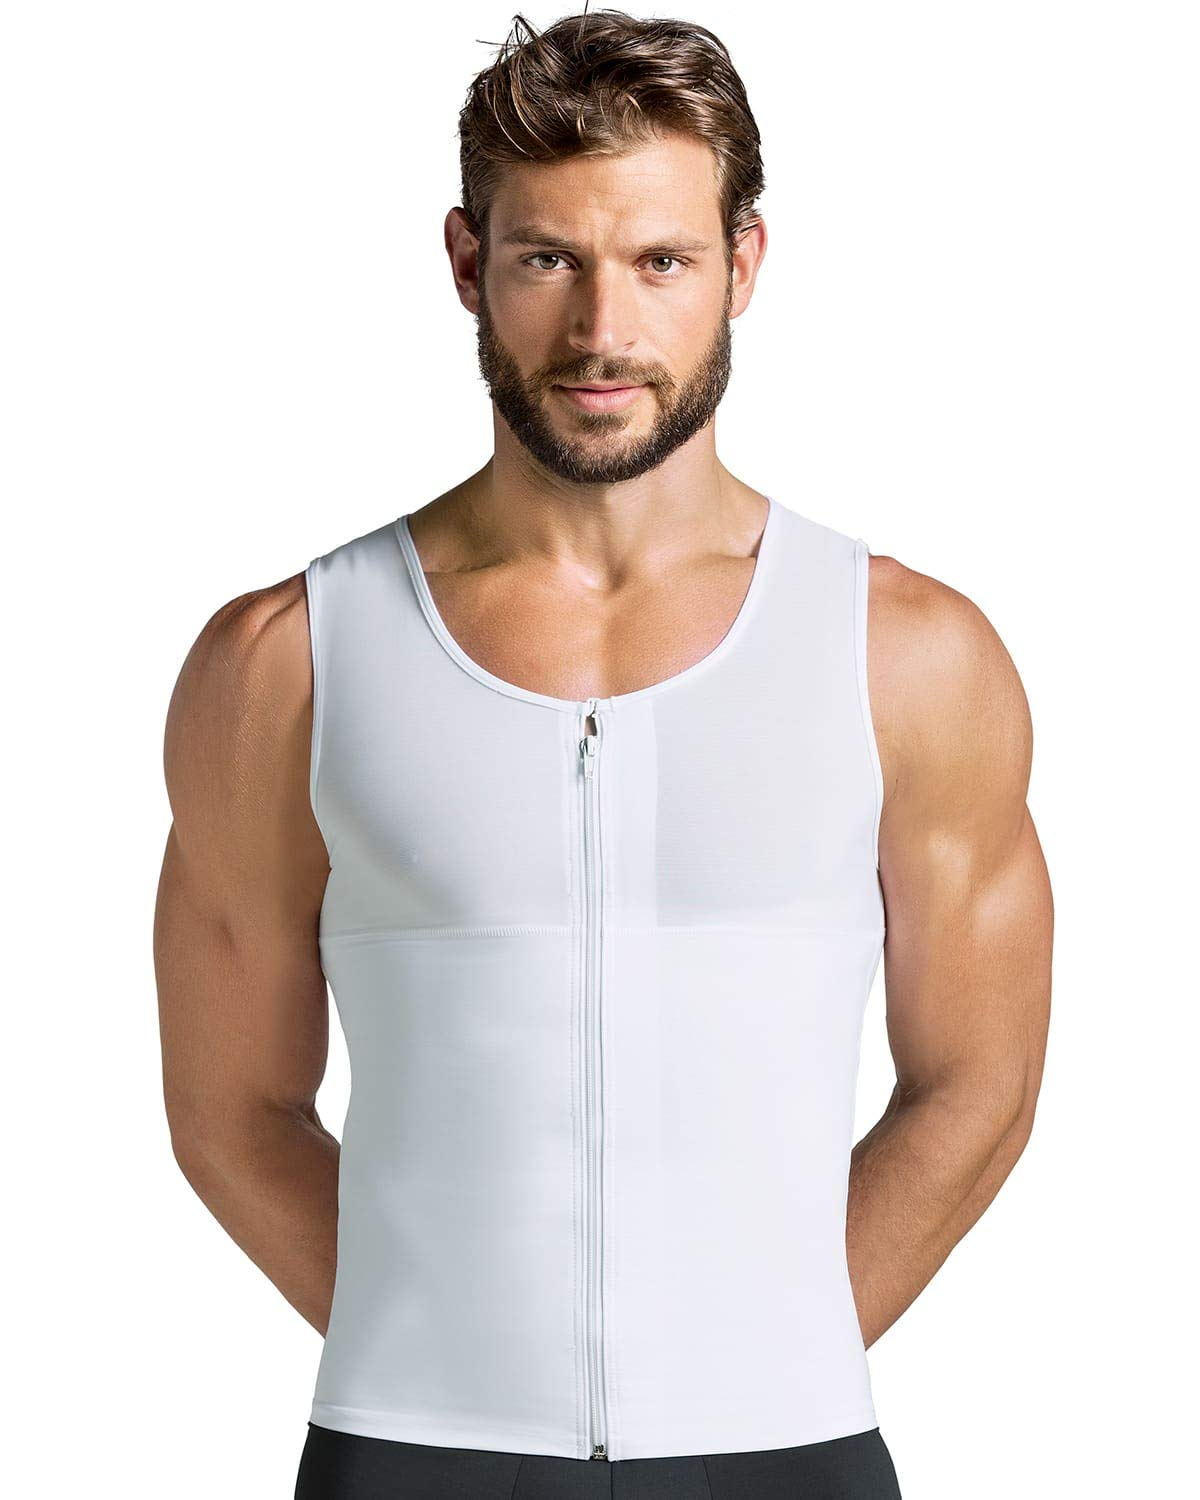 Leo Men's Abs Slimming Body Shaper with Back Support Leonisa 035000